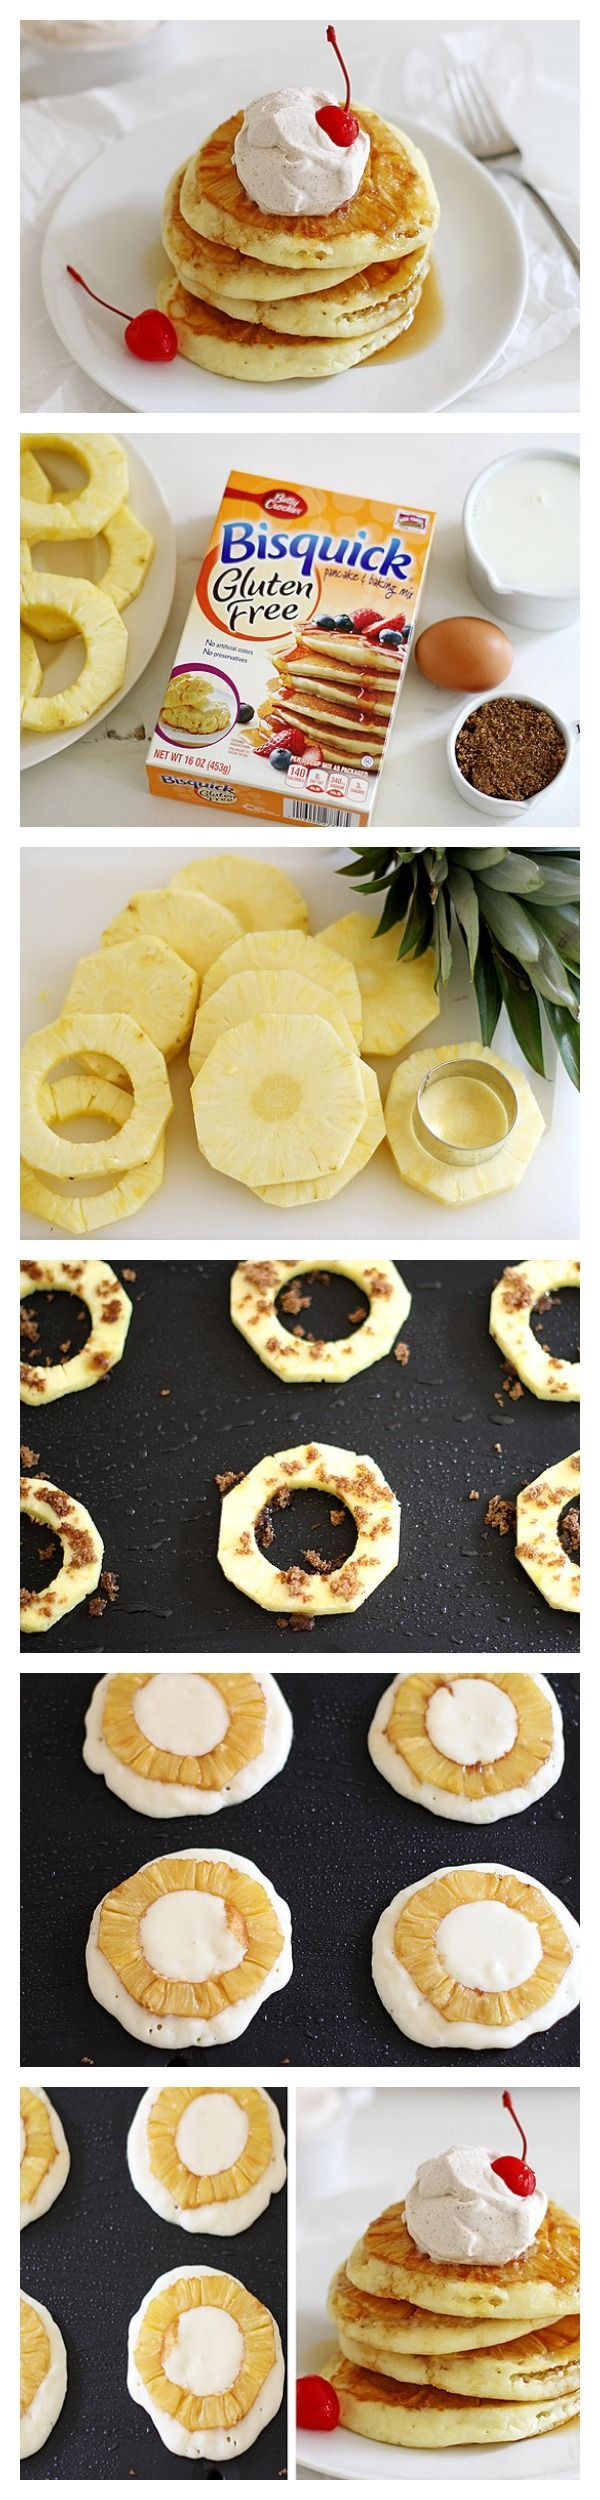 Pineapple Upside Down Pancakes for your gluten-free friends!